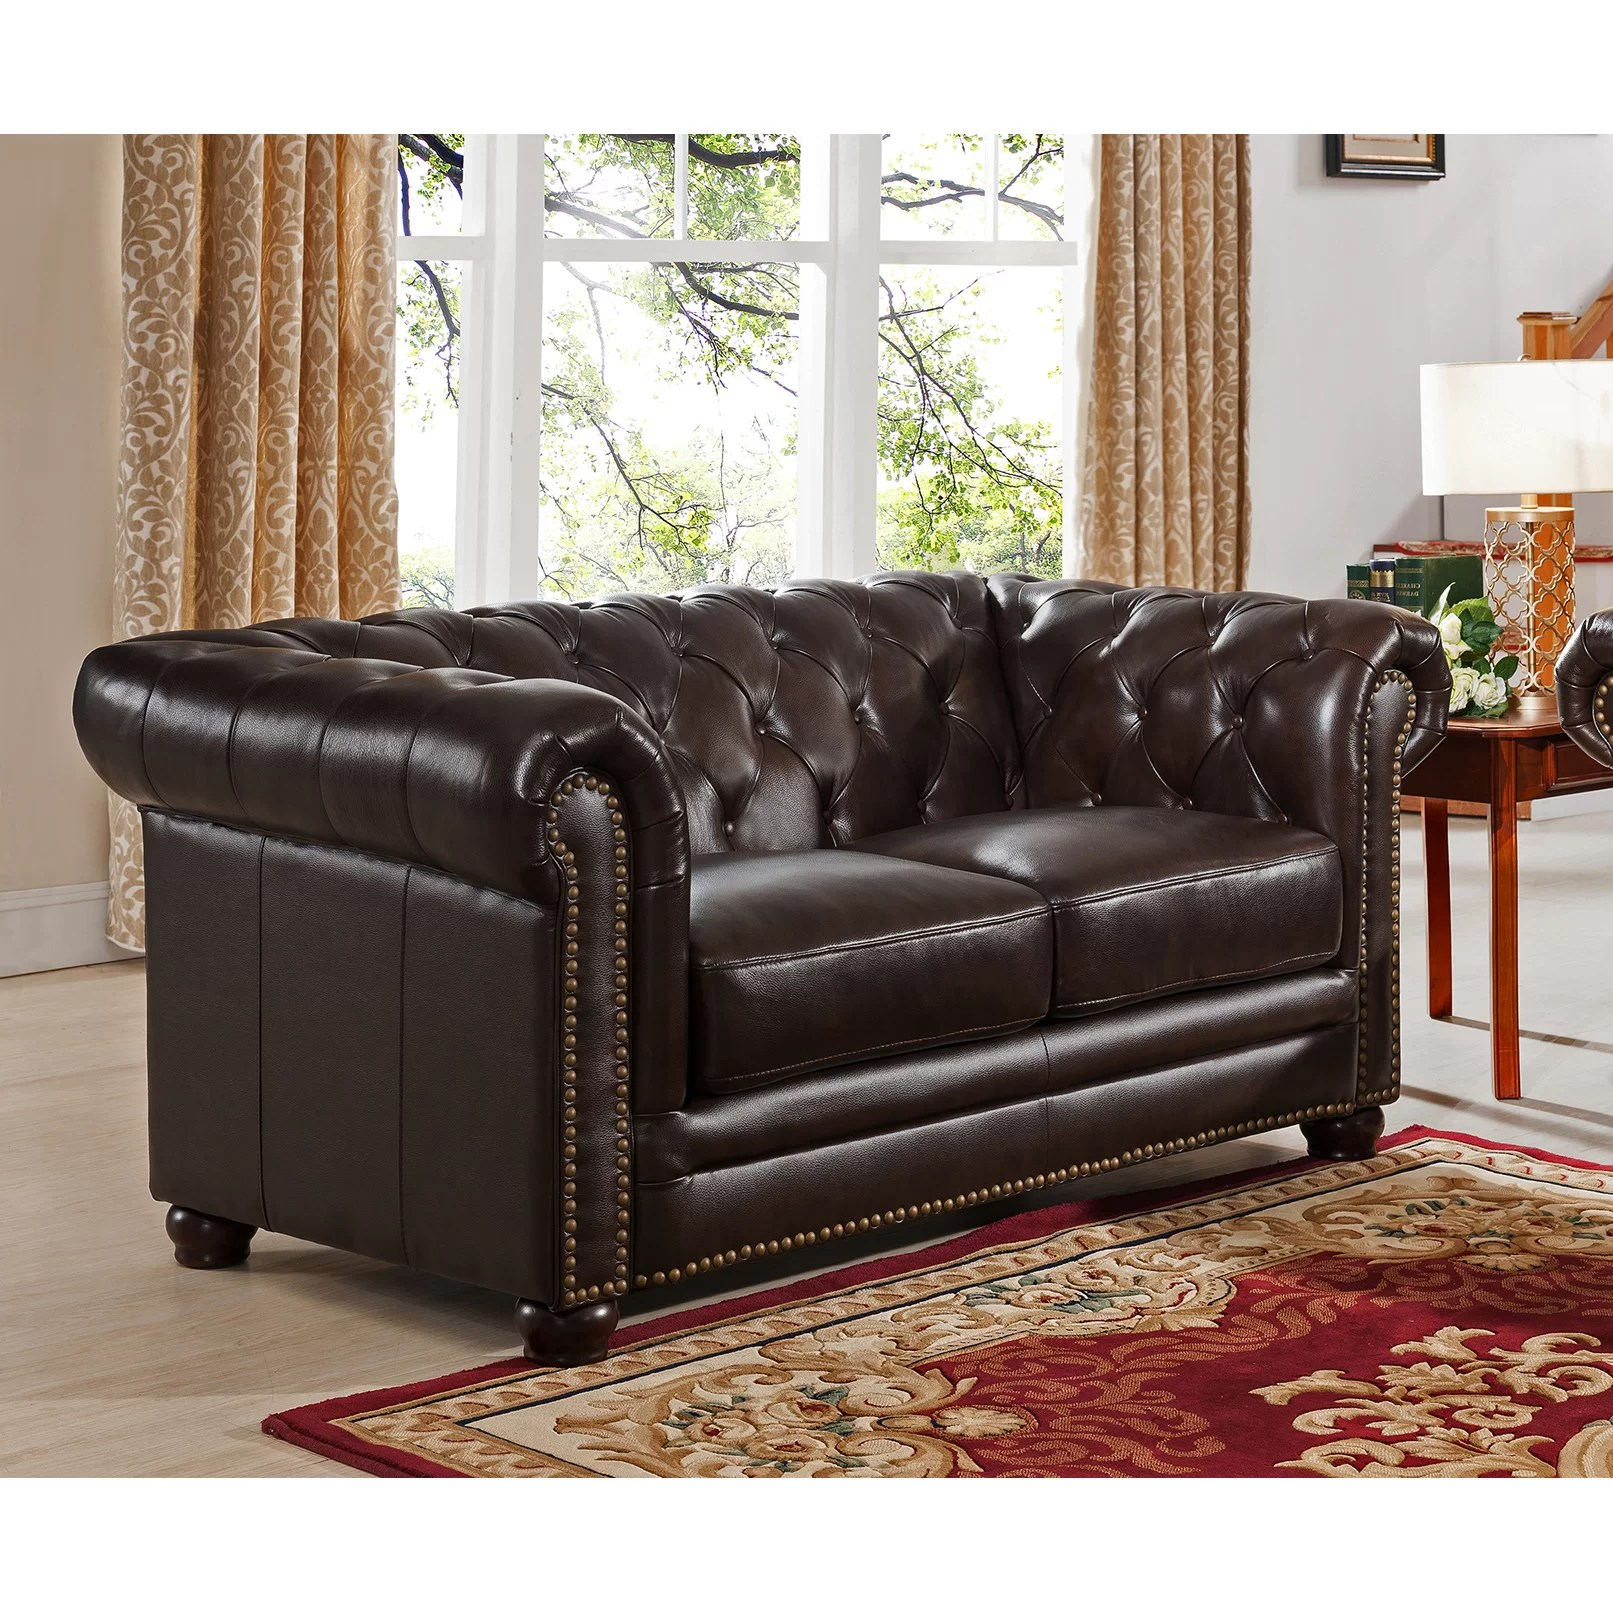 Leather Chesterfield Chair Amax Kensington Top Grain Leather Chesterfield Sofa